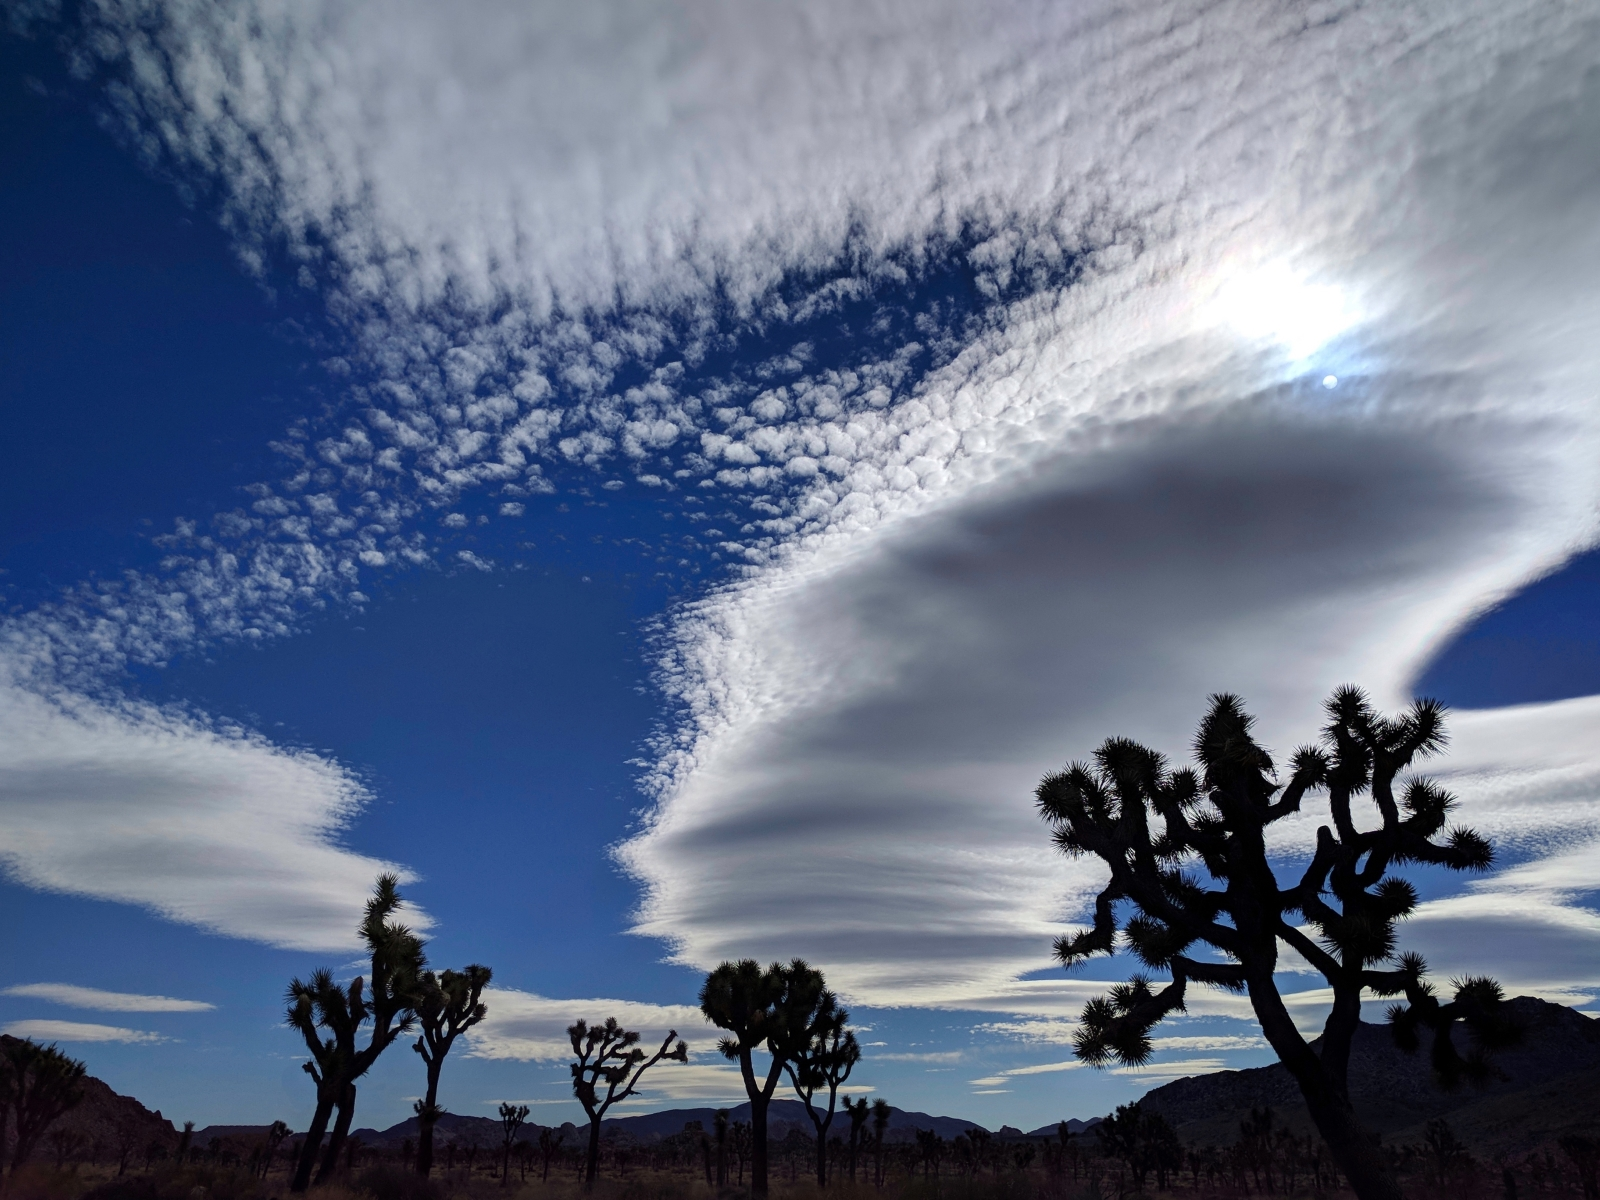 'Surreal skies- Joshua Tree National Park' (PB 1 Place) by Alice-Ann Whiteneck - RO